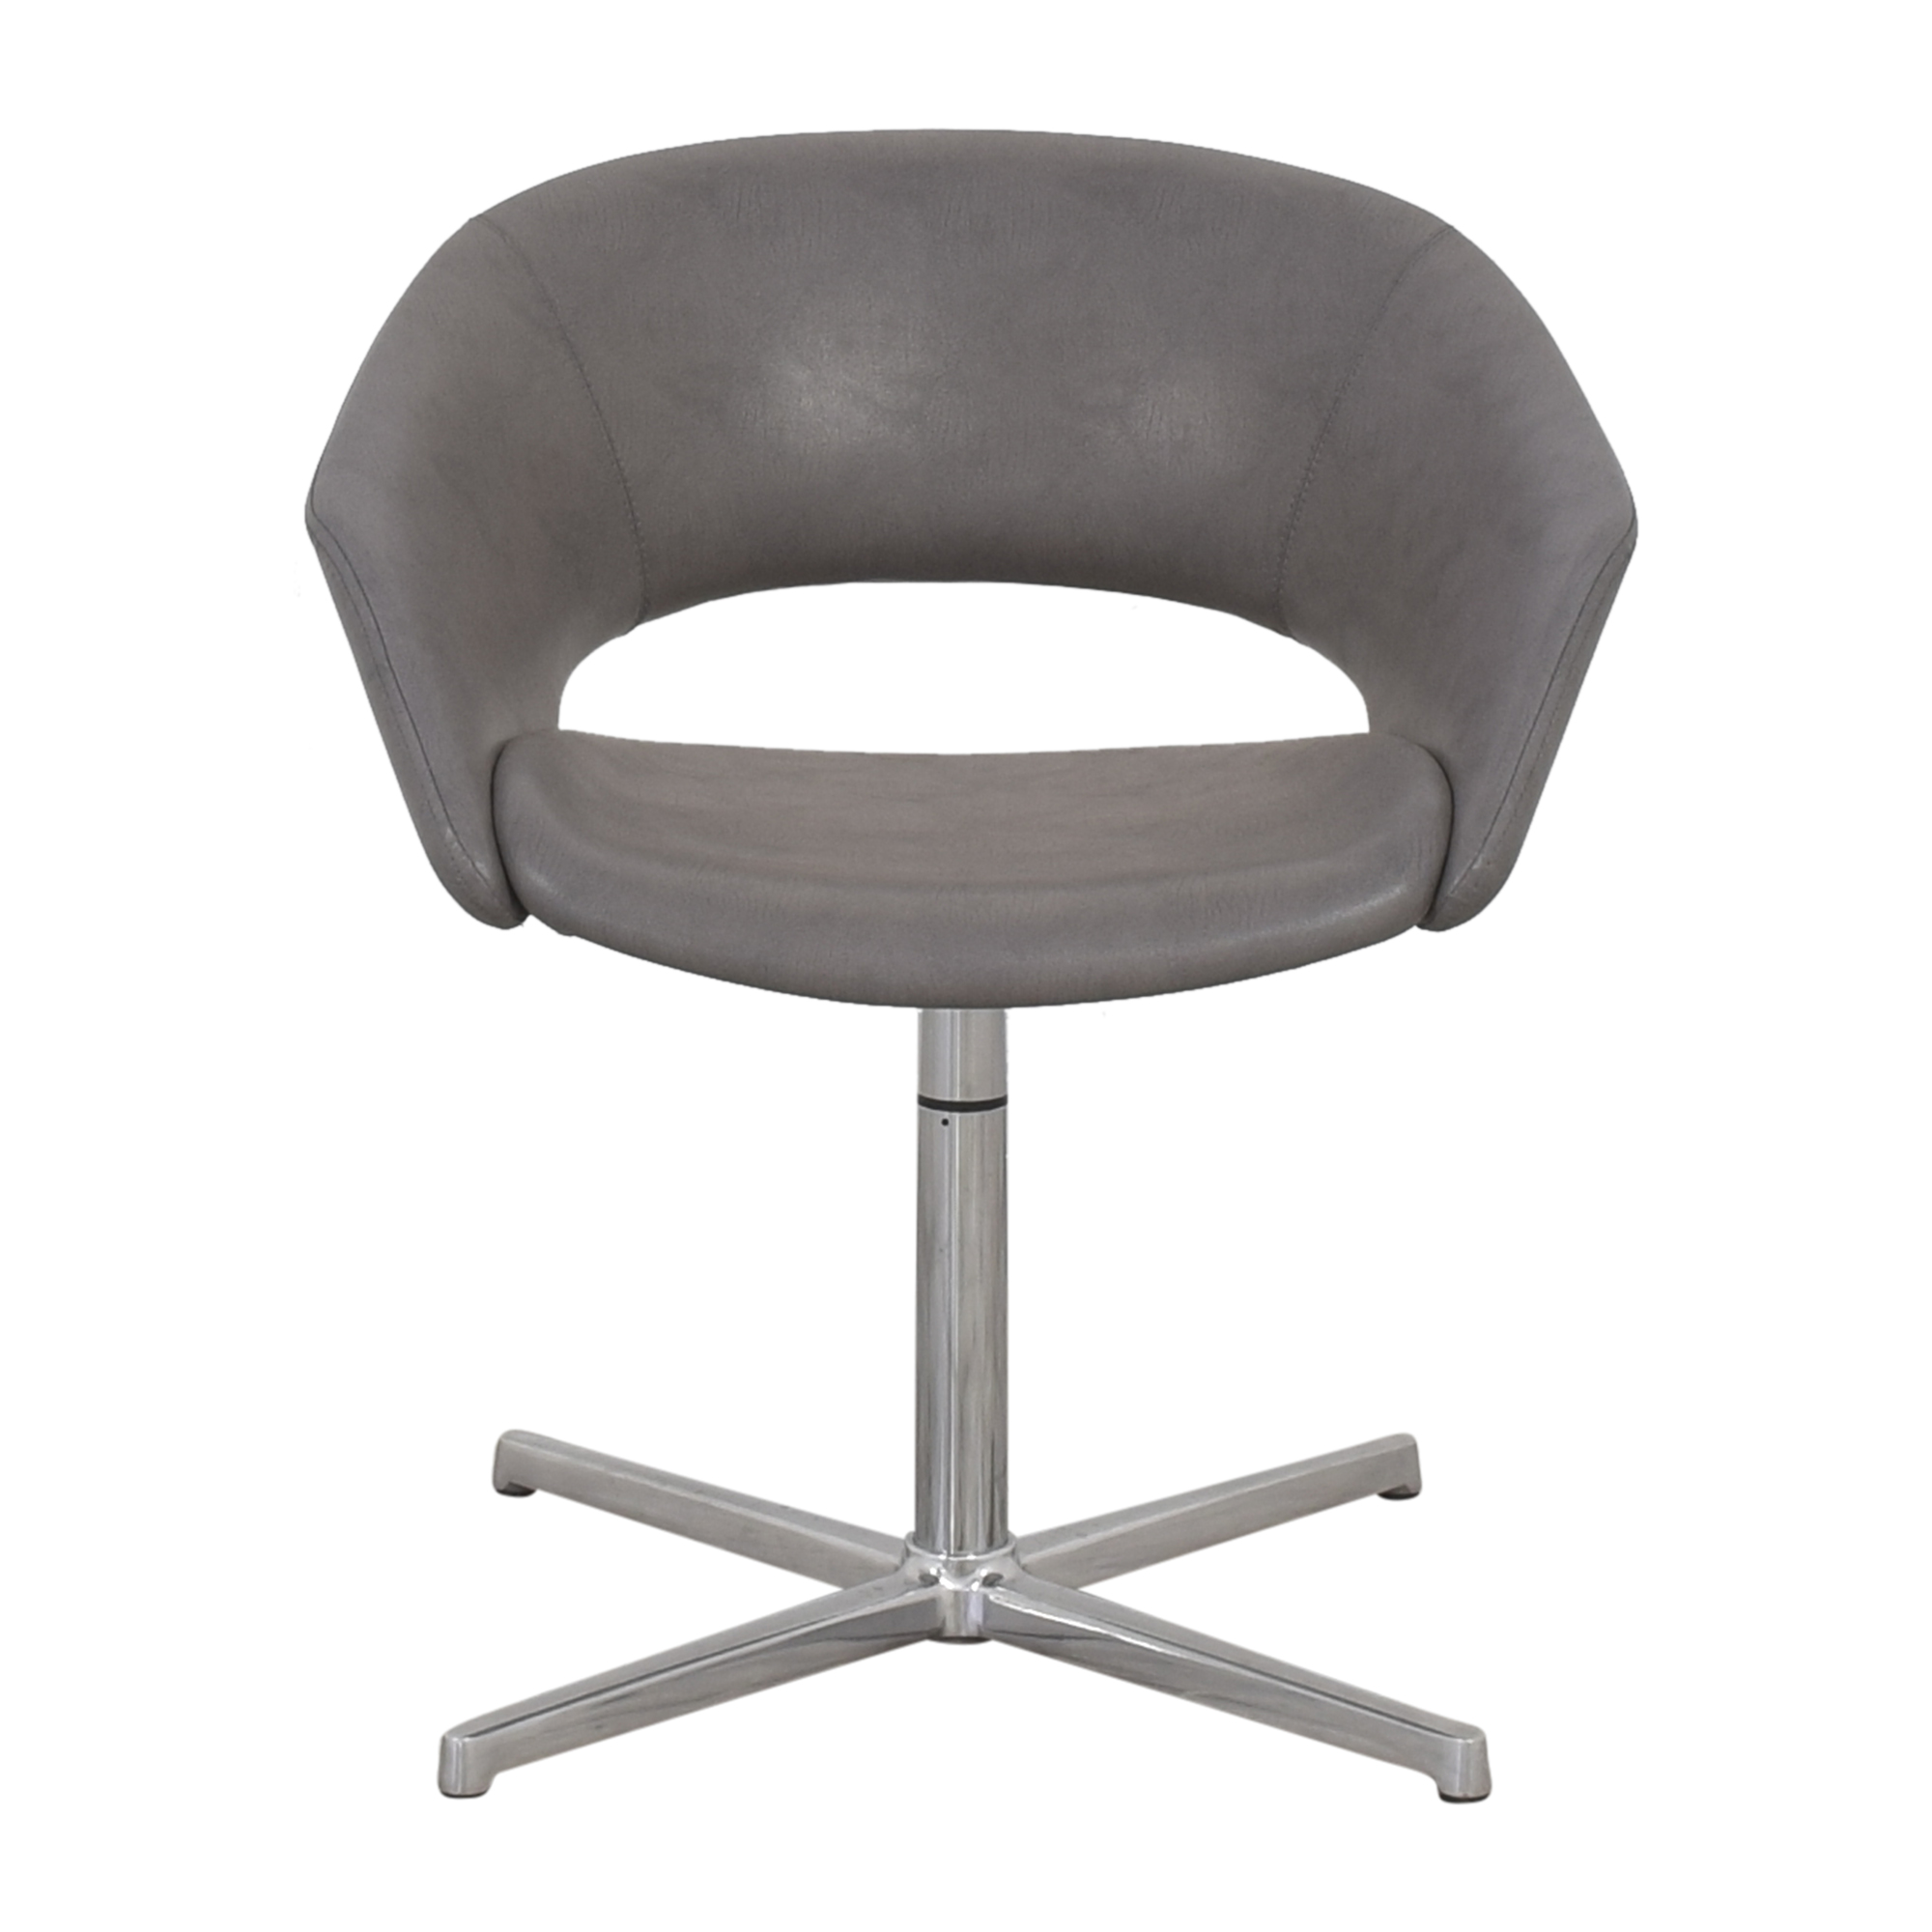 buy Leland Mod Pedestal Swivel Chair Leland International